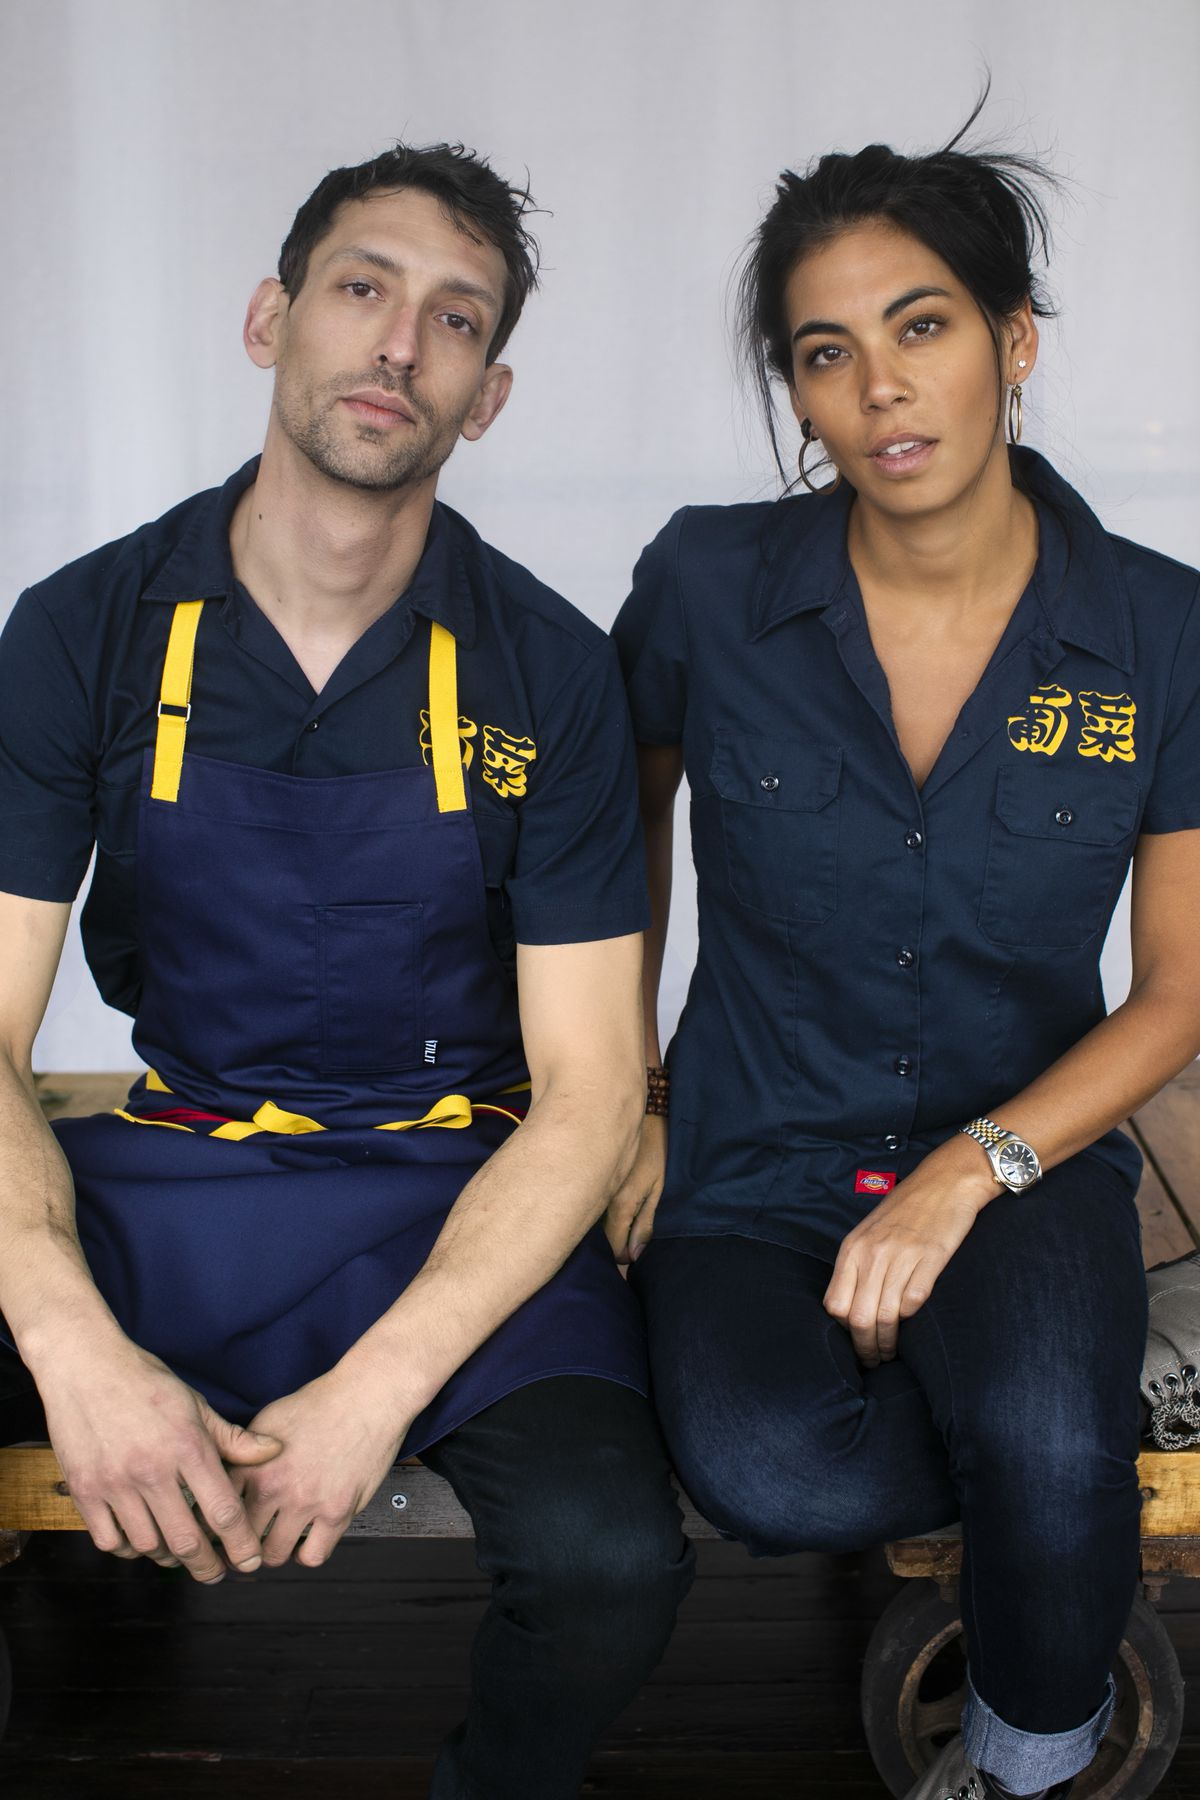 A portrait photo of a man and a woman.